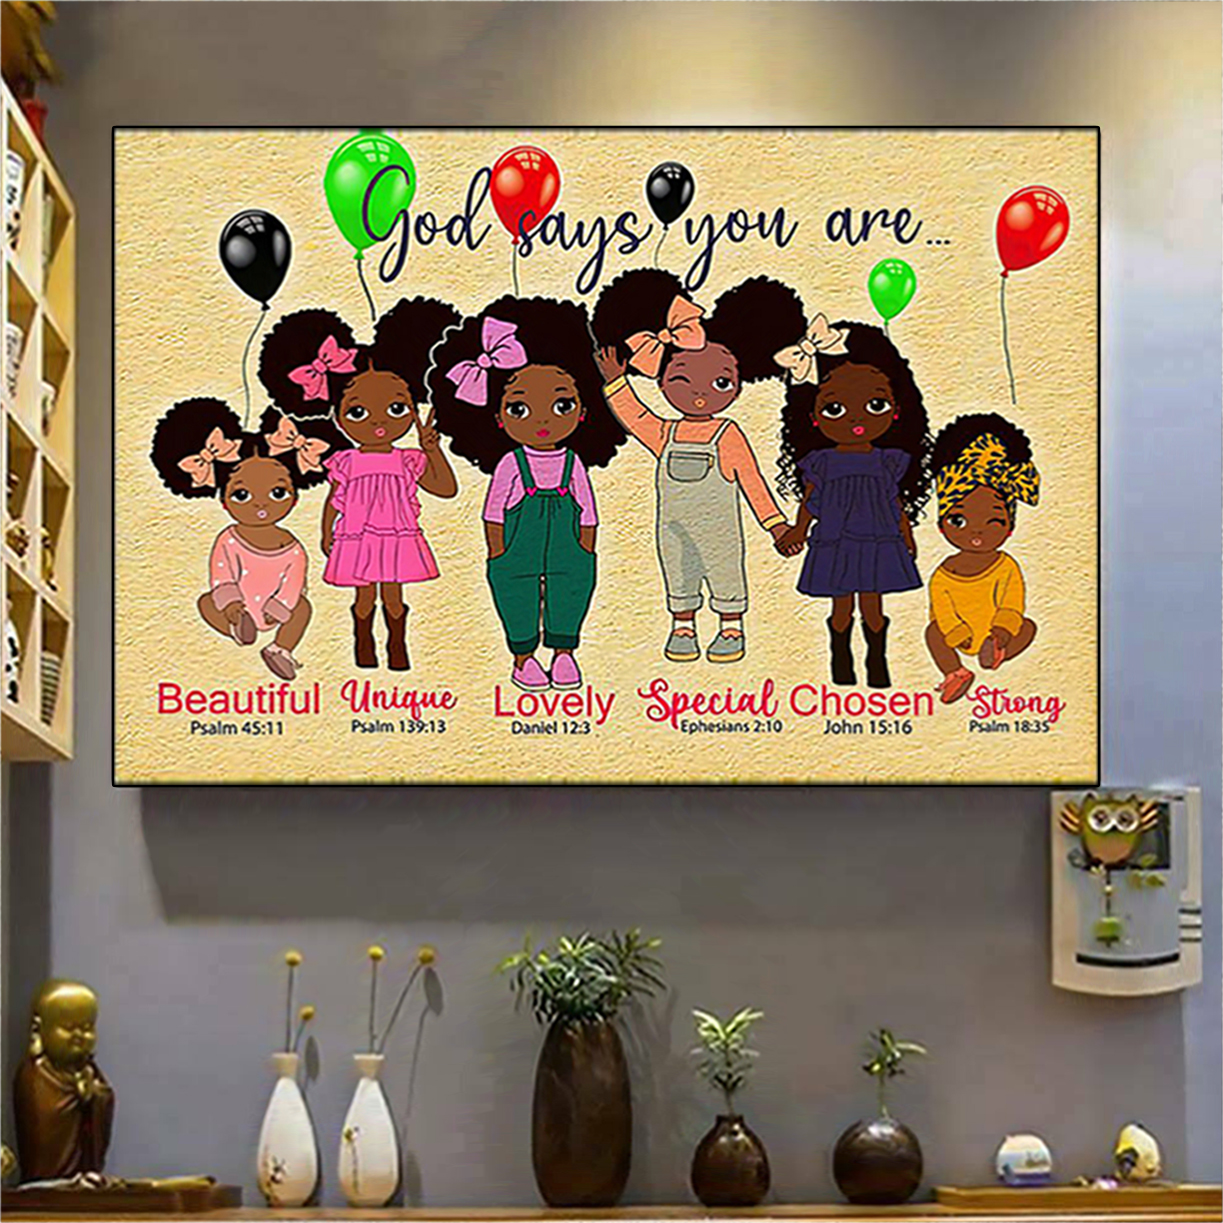 Black girl godchild says you are poster A2